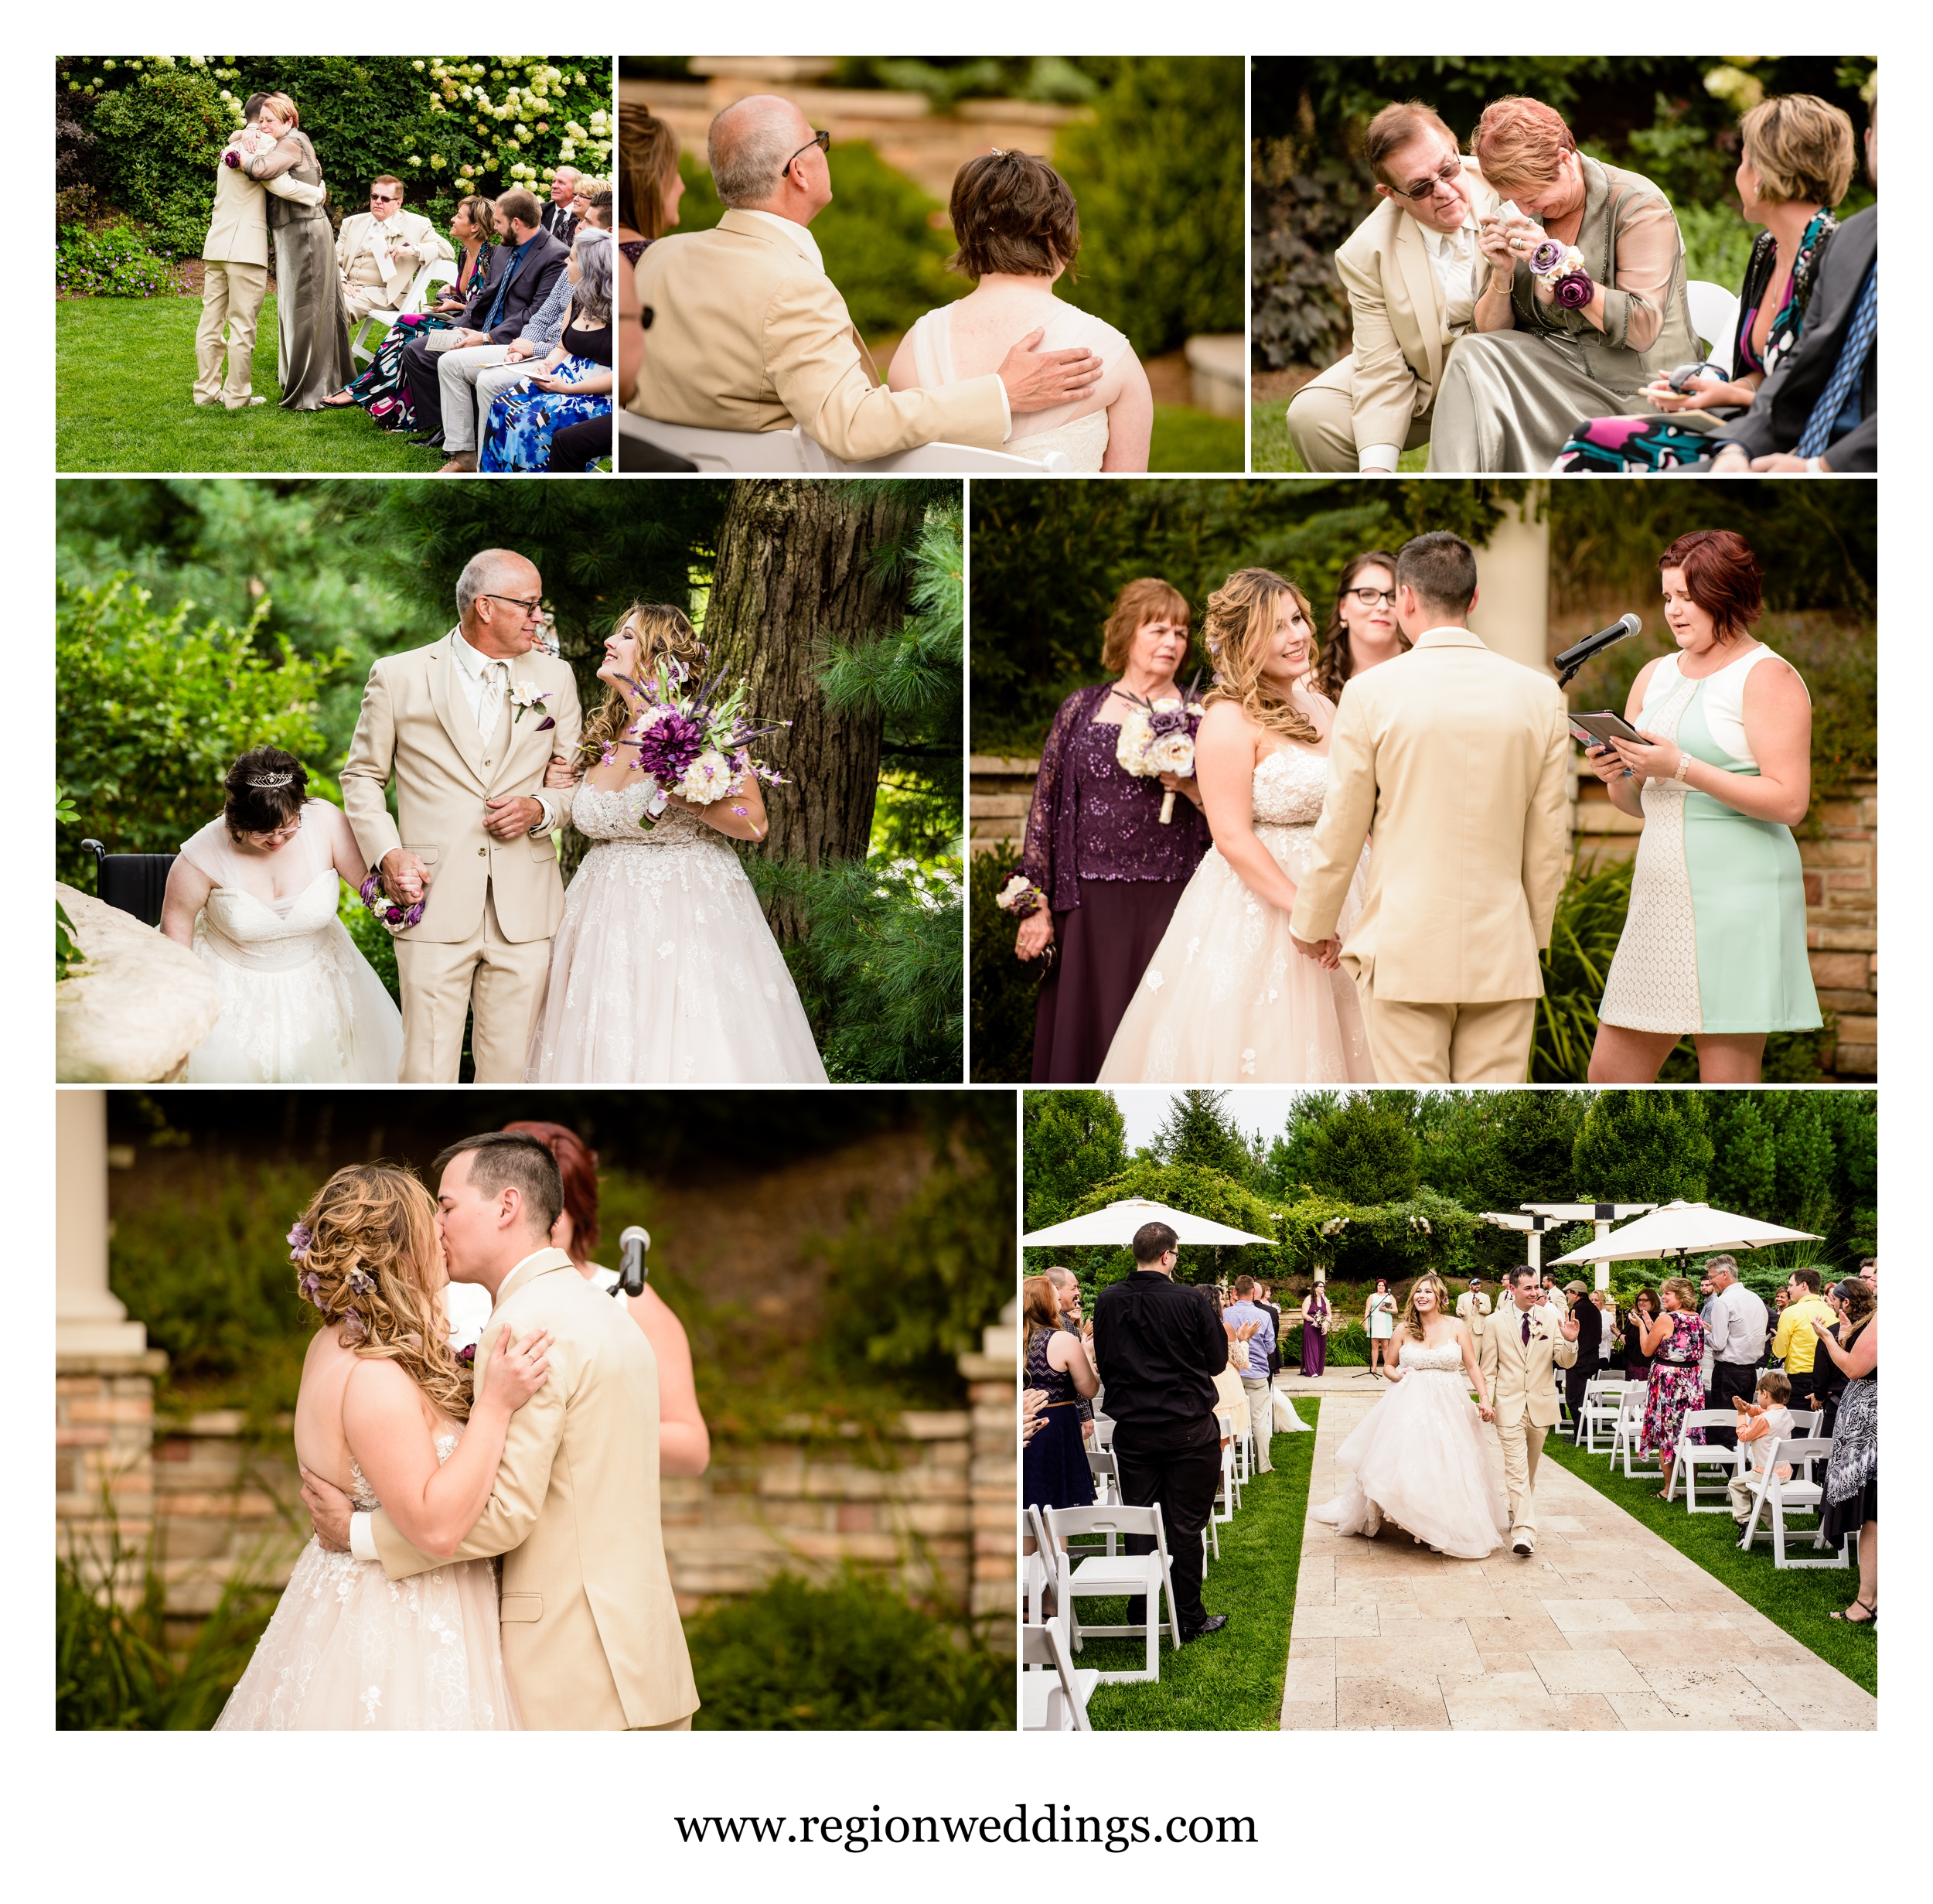 Outdoor summer wedding ceremony at Sandy Pines Golf Course.